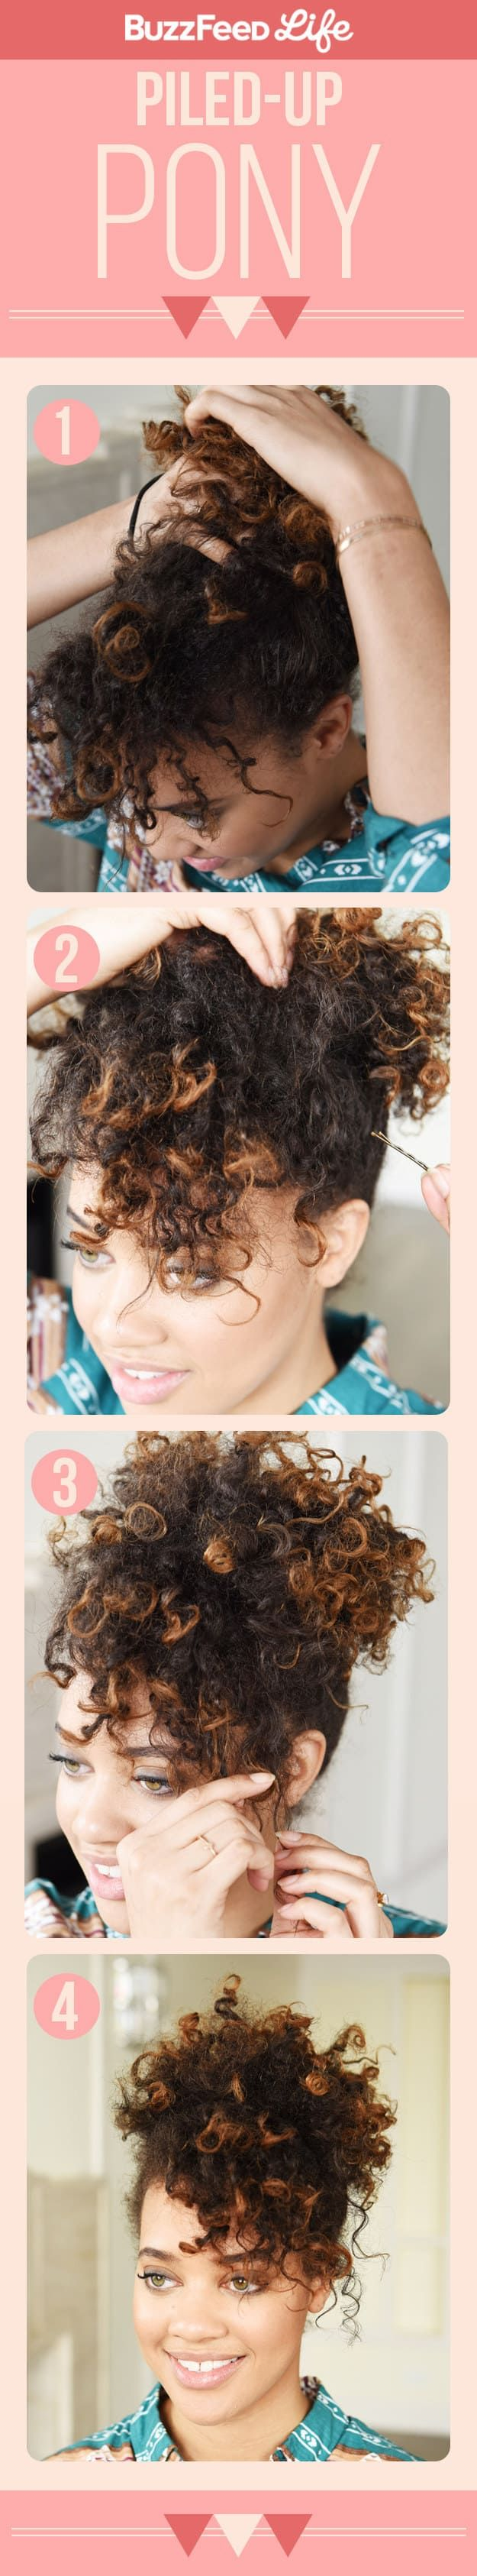 What You'll Need: - Hair elastics- Bobby pinsStep 1: Gather your hair into a high ponytail, leaving out your bangs or the front pieces of hair. Secure the ponytail with an elastic. Step 2: Use bobby pins to pin any stray curls or flyaways down toward the ponytail. Step 3: Tousle your bangs or the front pieces of hair to frame your face. Step 4: Tousle your ponytail to place your hair exactly the way you want!